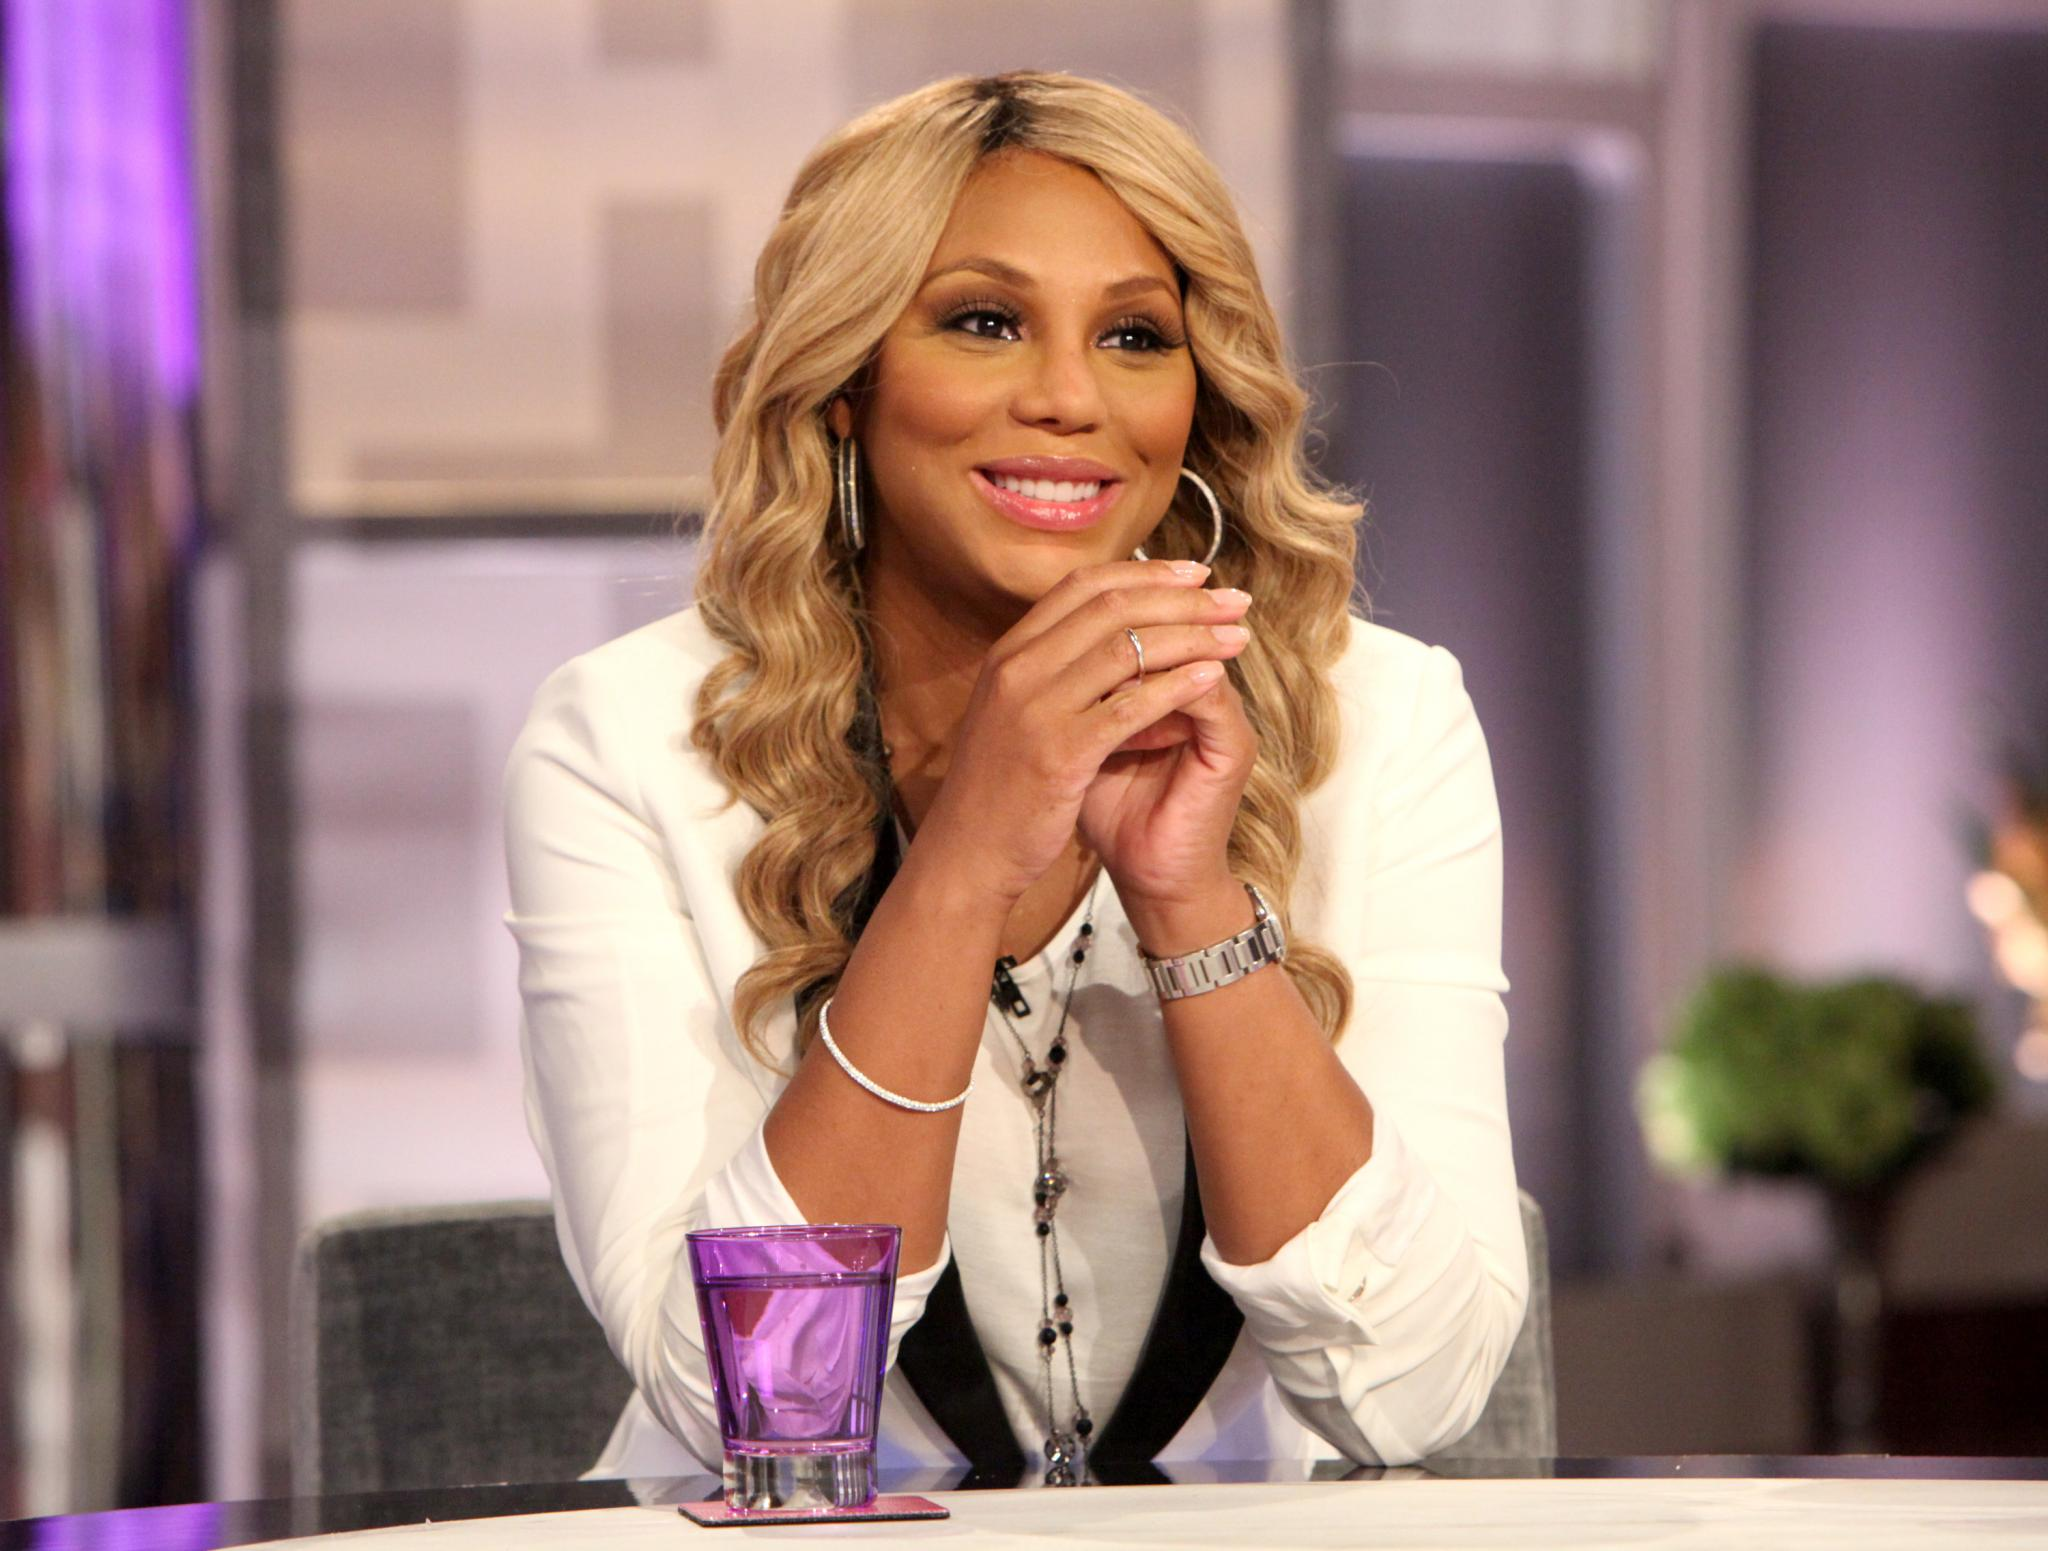 """""""tamar-braxton-gushes-over-pastor-and-author-cora-brionne-jakes-coleman-with-the-most-emotional-message-and-funny-photo-session"""""""